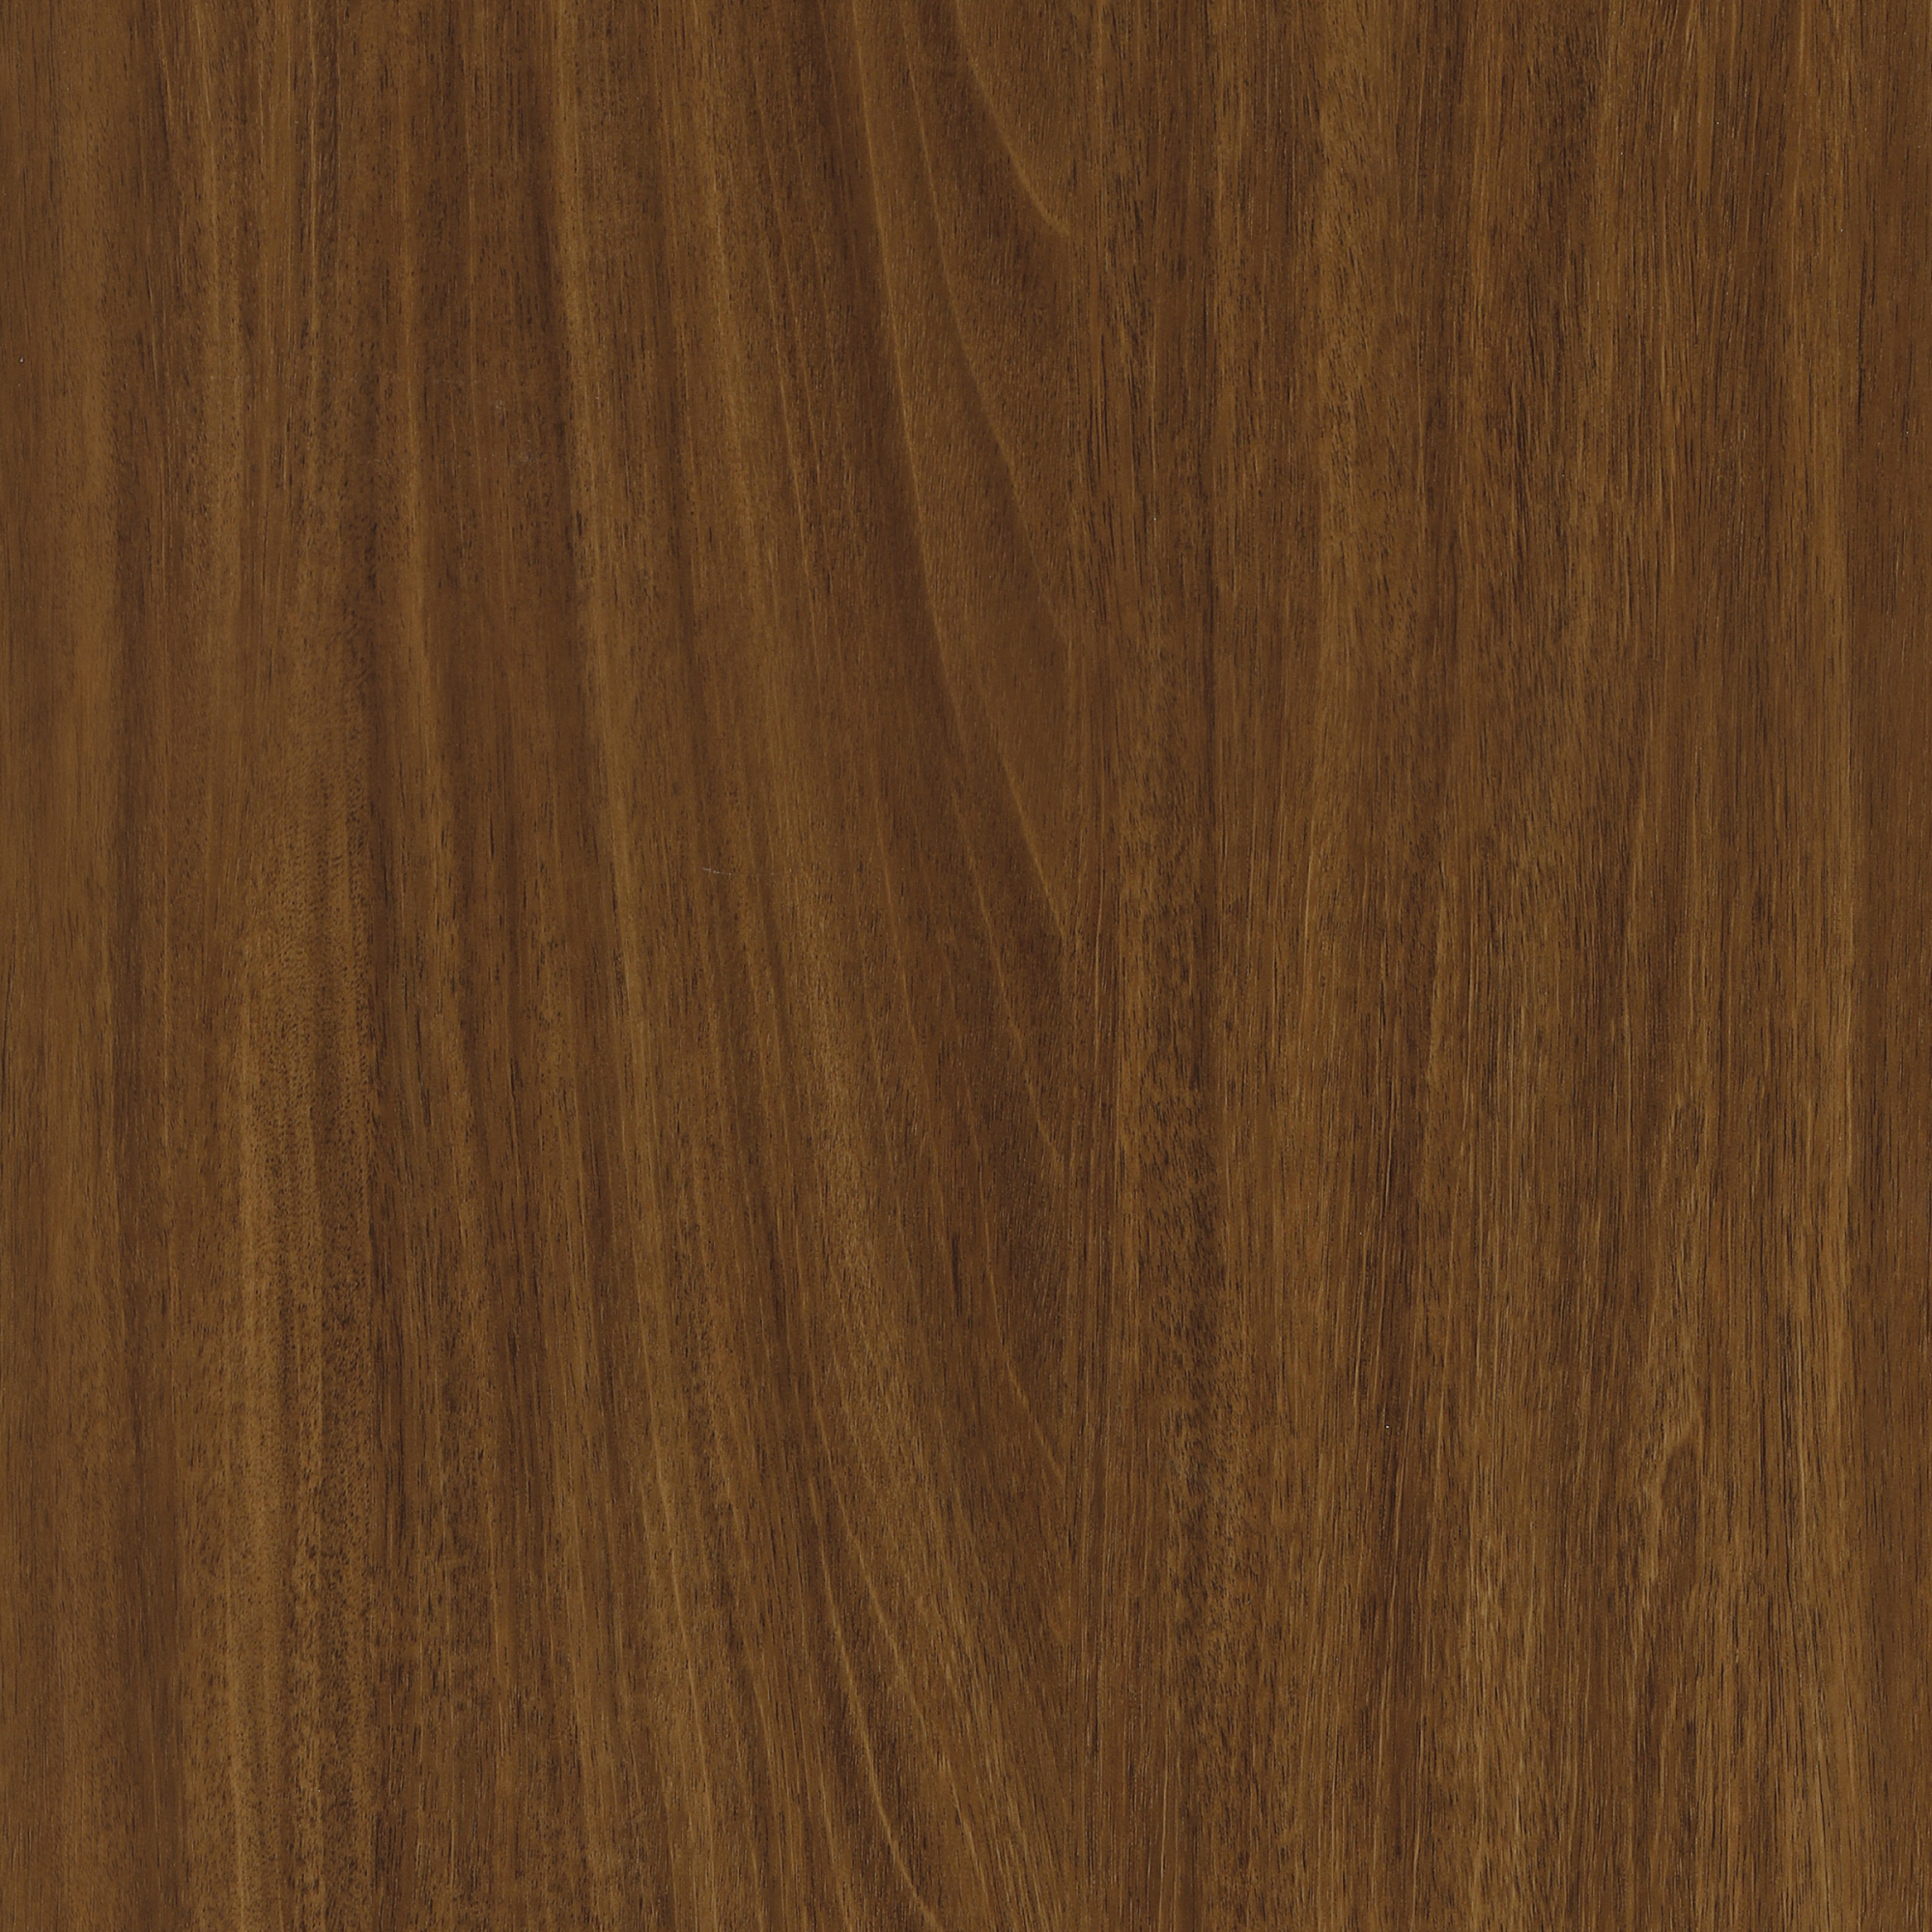 Image for Medium Walnut Thermoshield™ Sample from SmartMoves